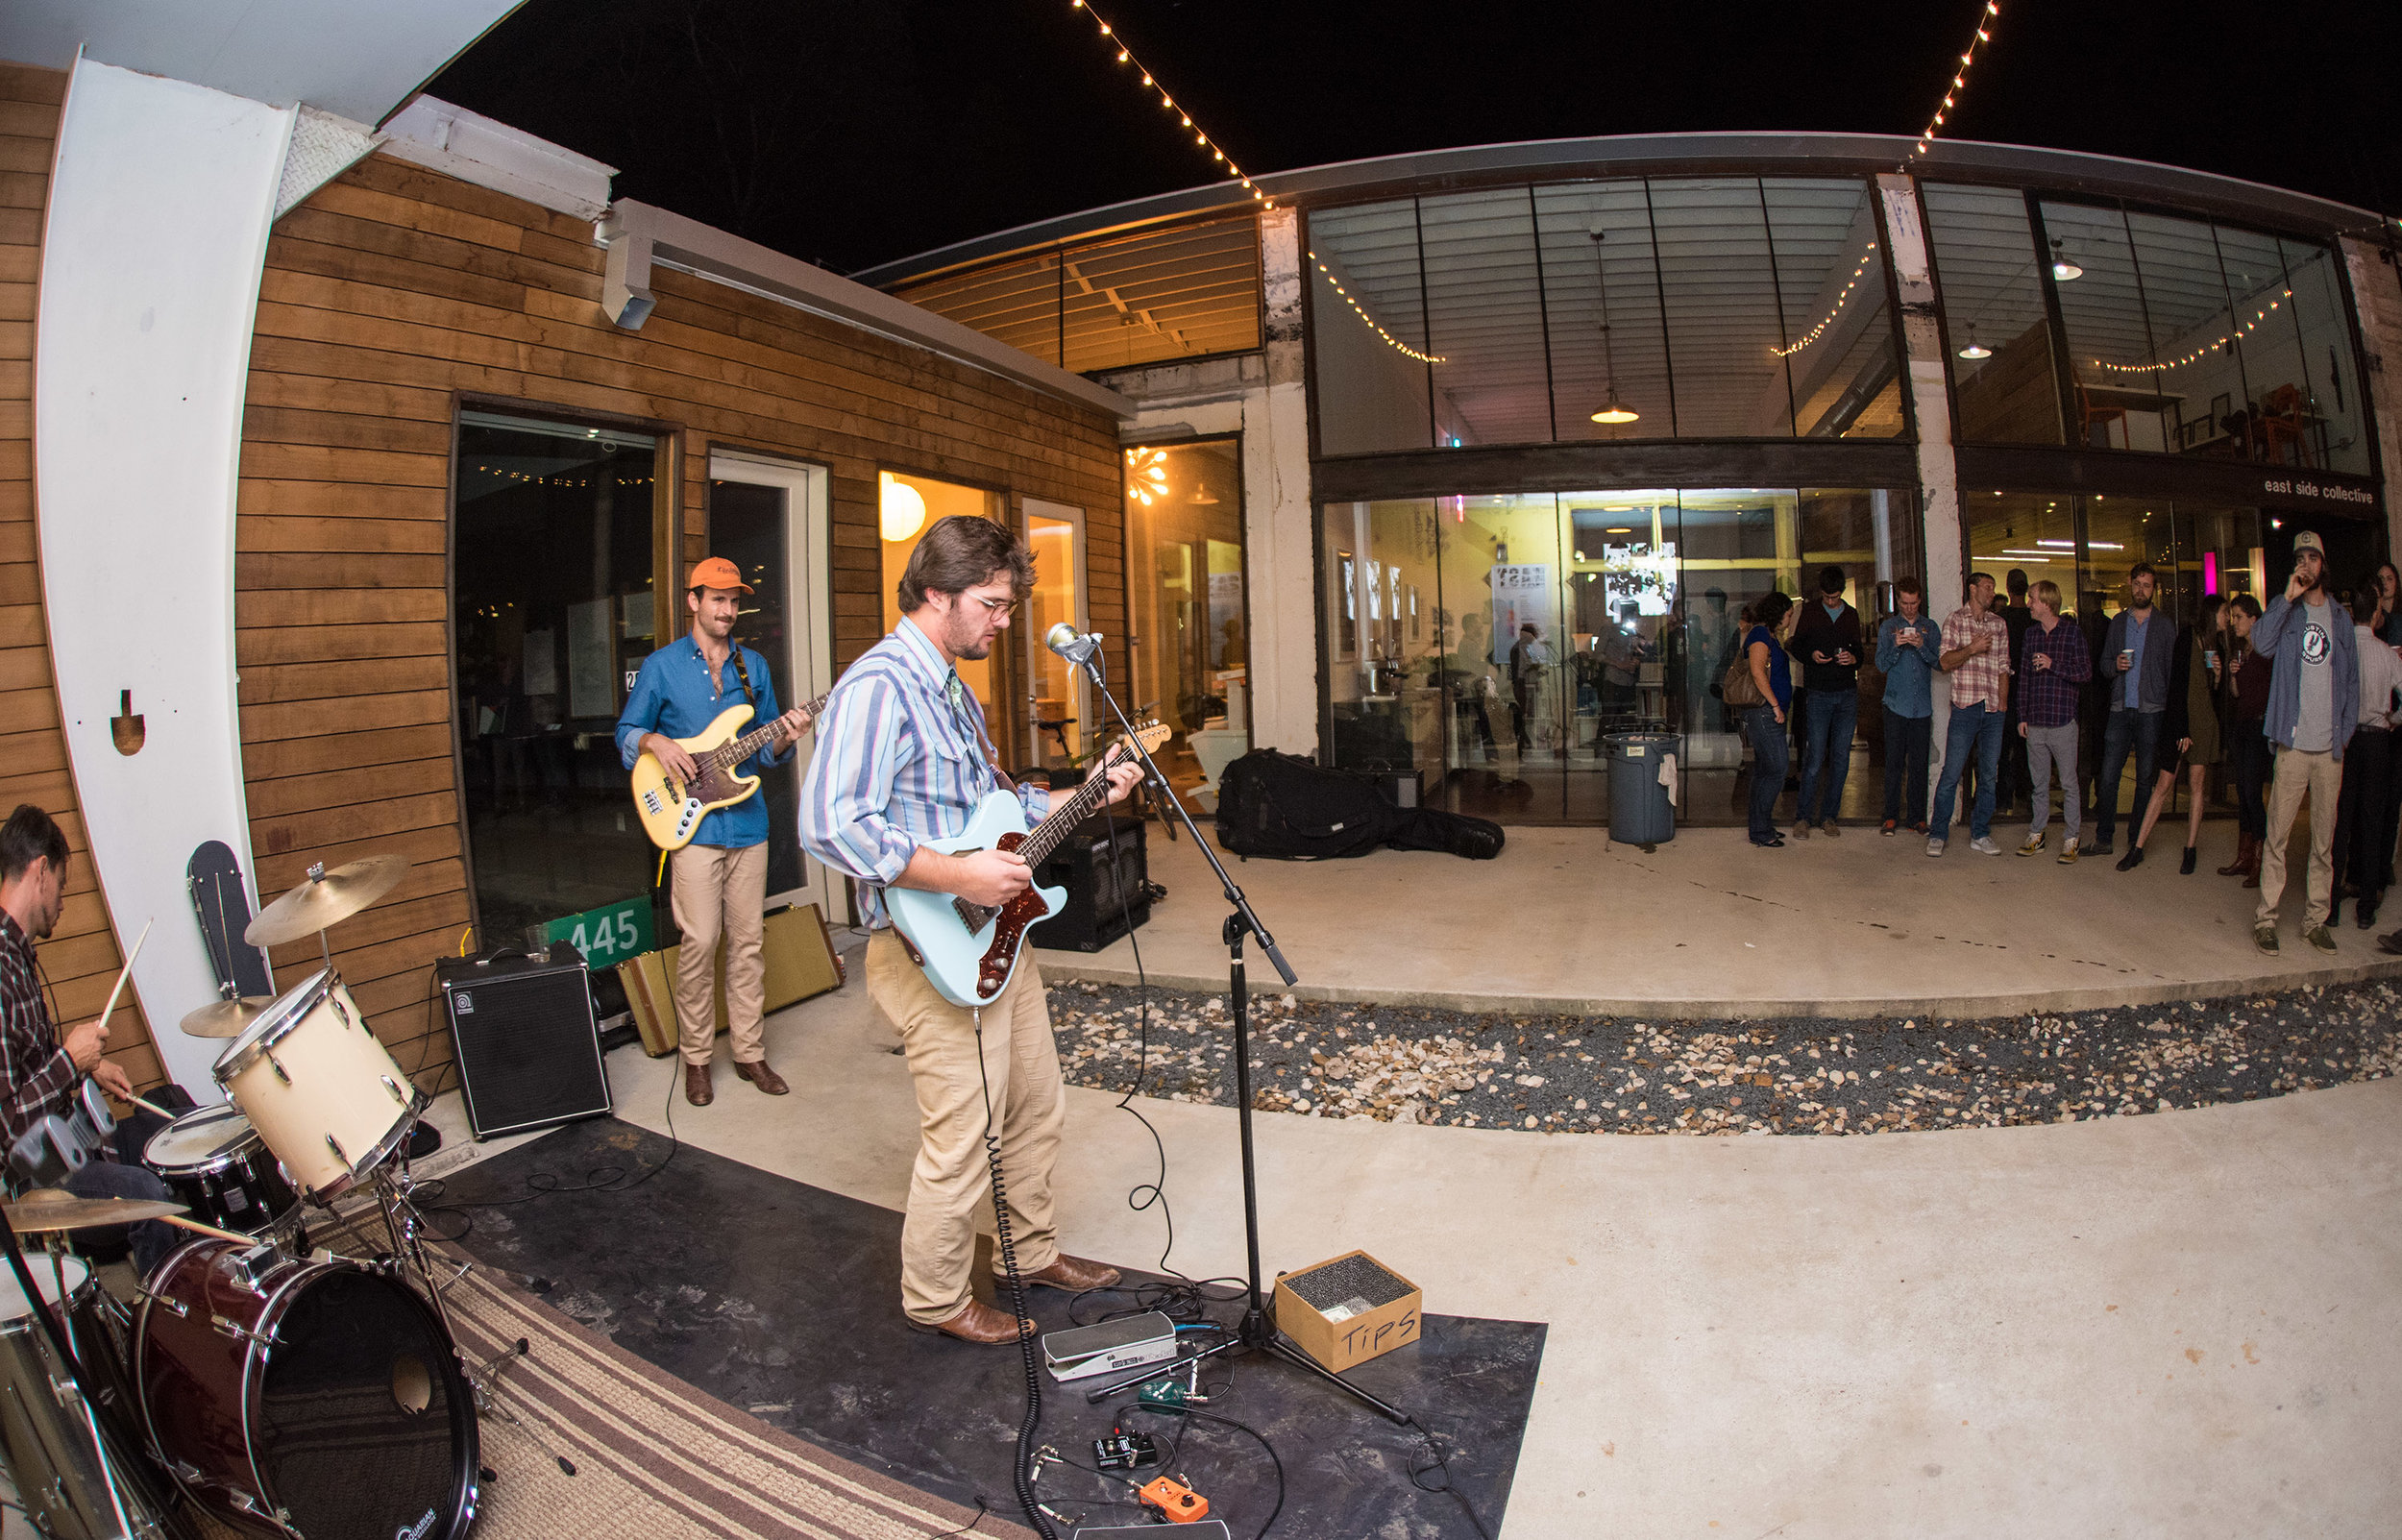 dbh-EASTopeningparty_EastSideCollective-111116-08.jpg